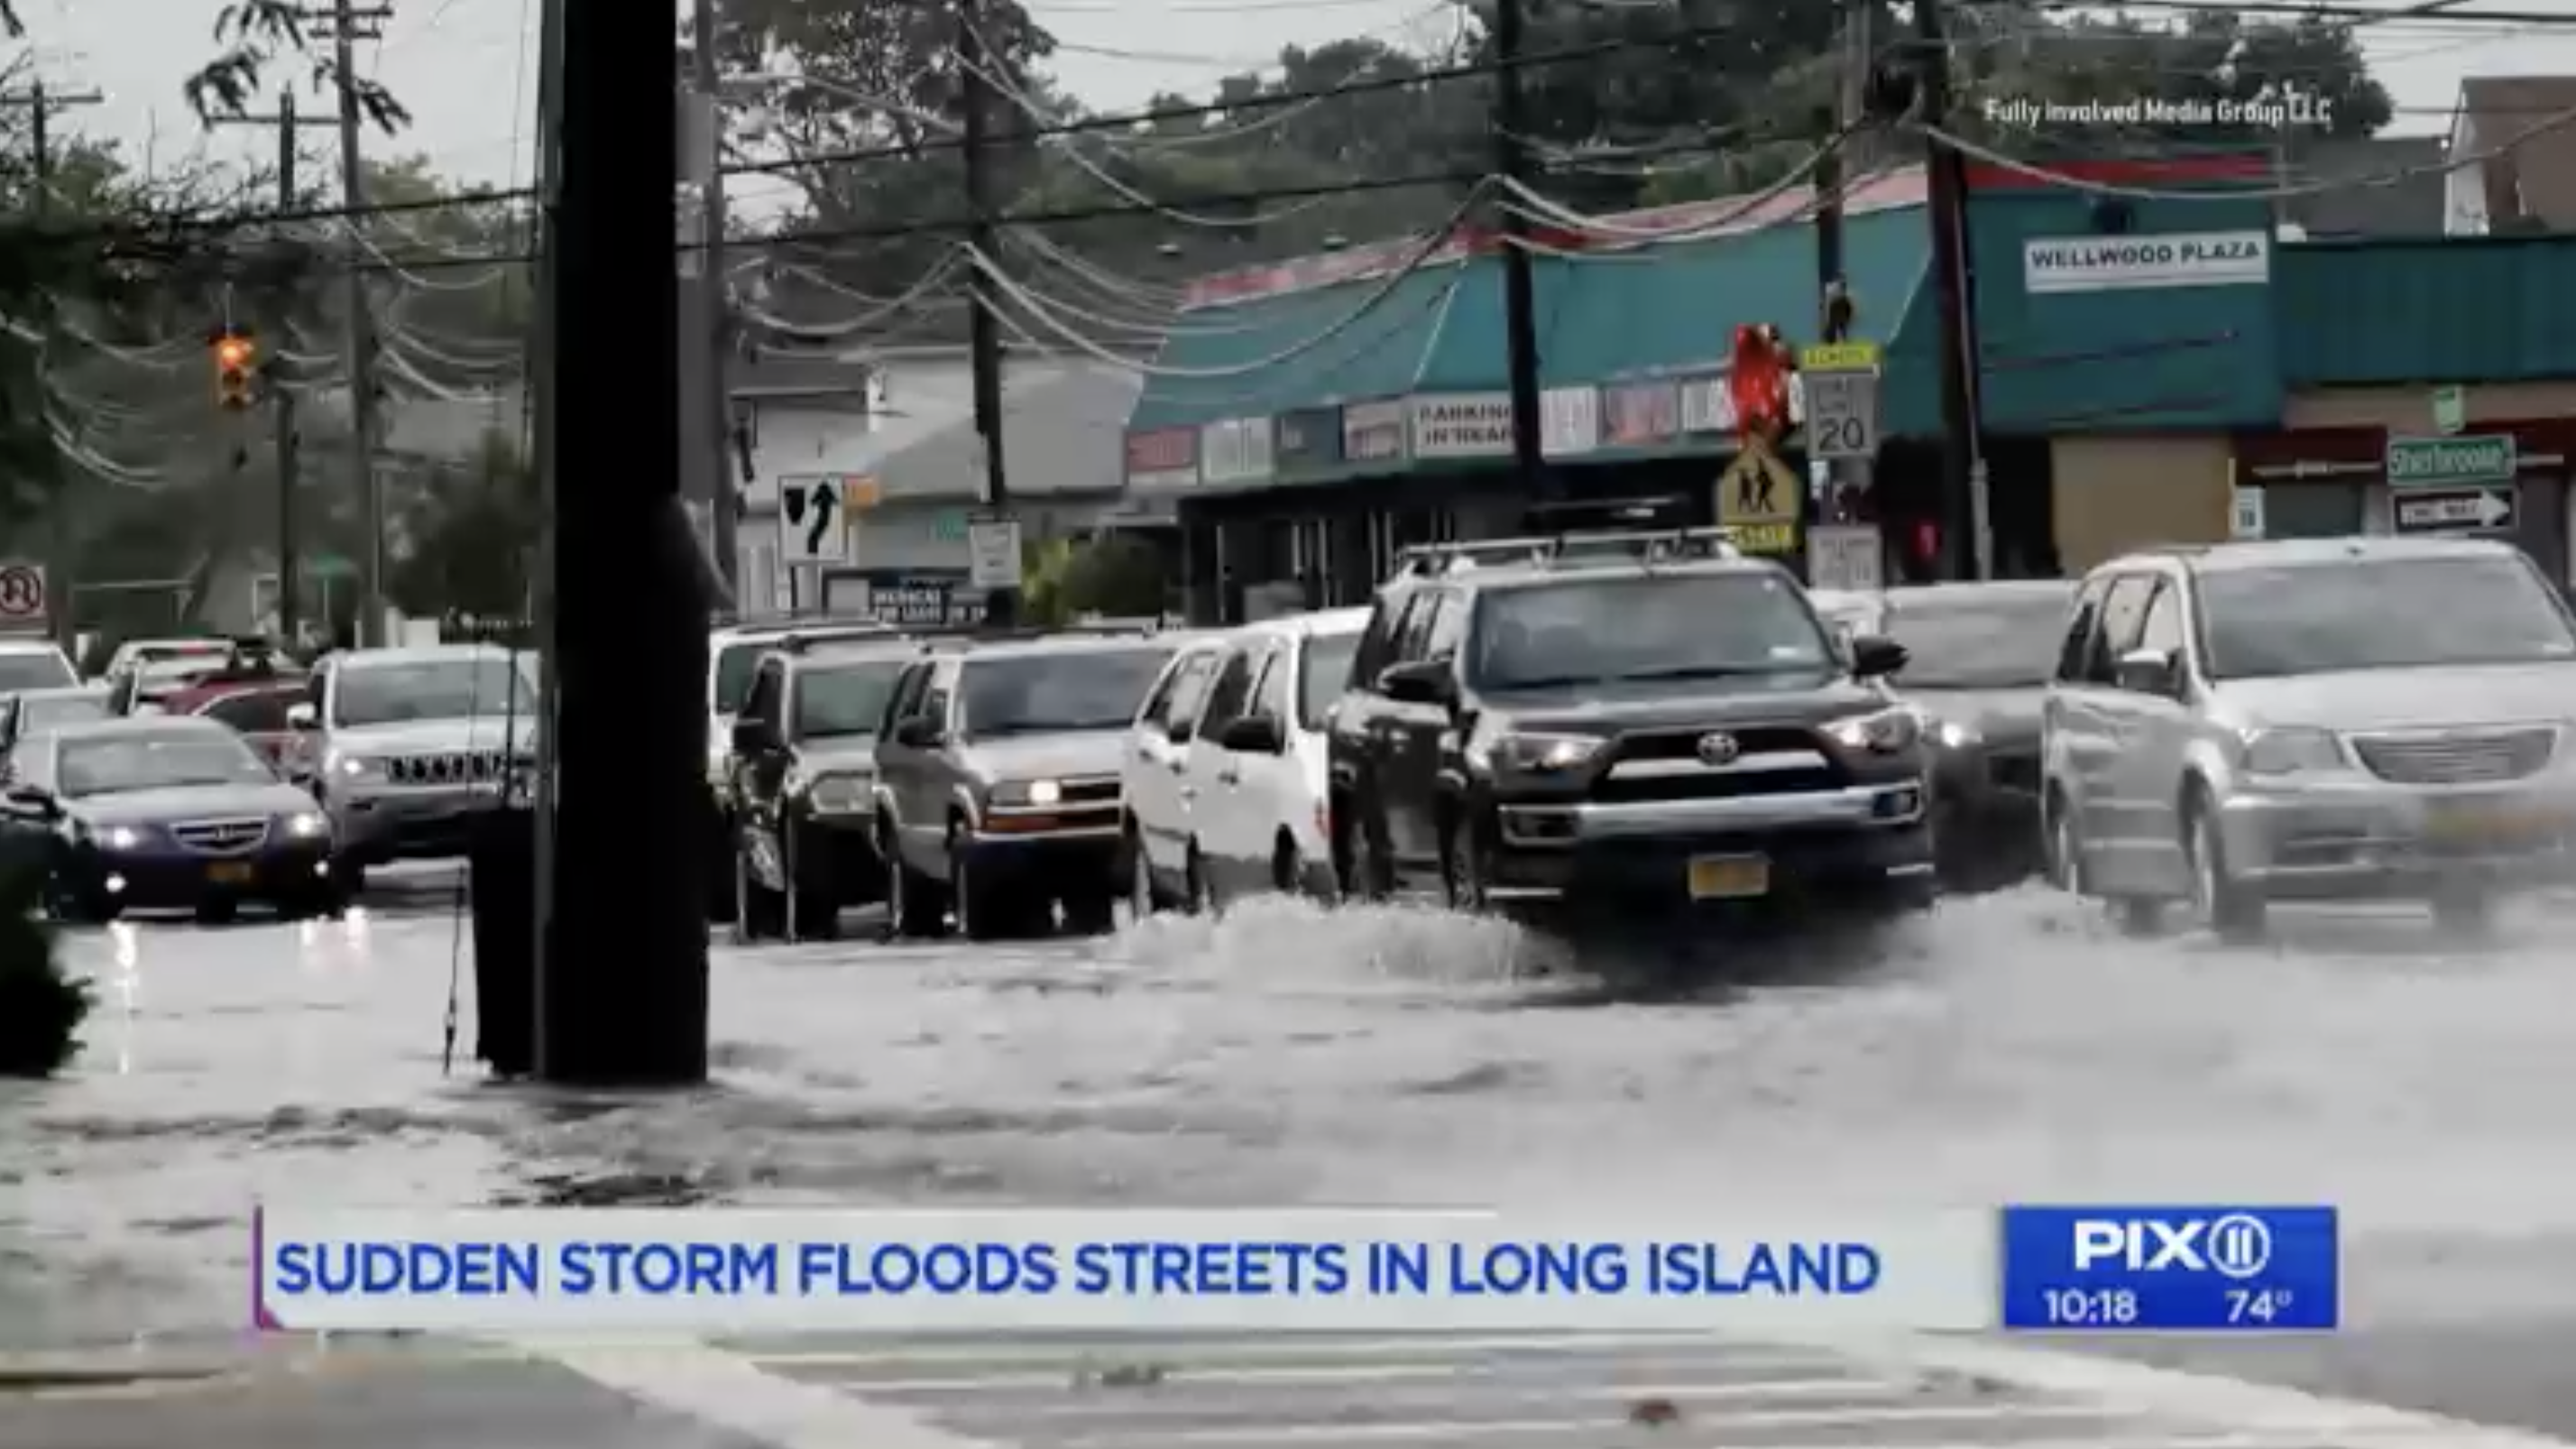 PIX11 NY aired our footage after a wild storm swept through